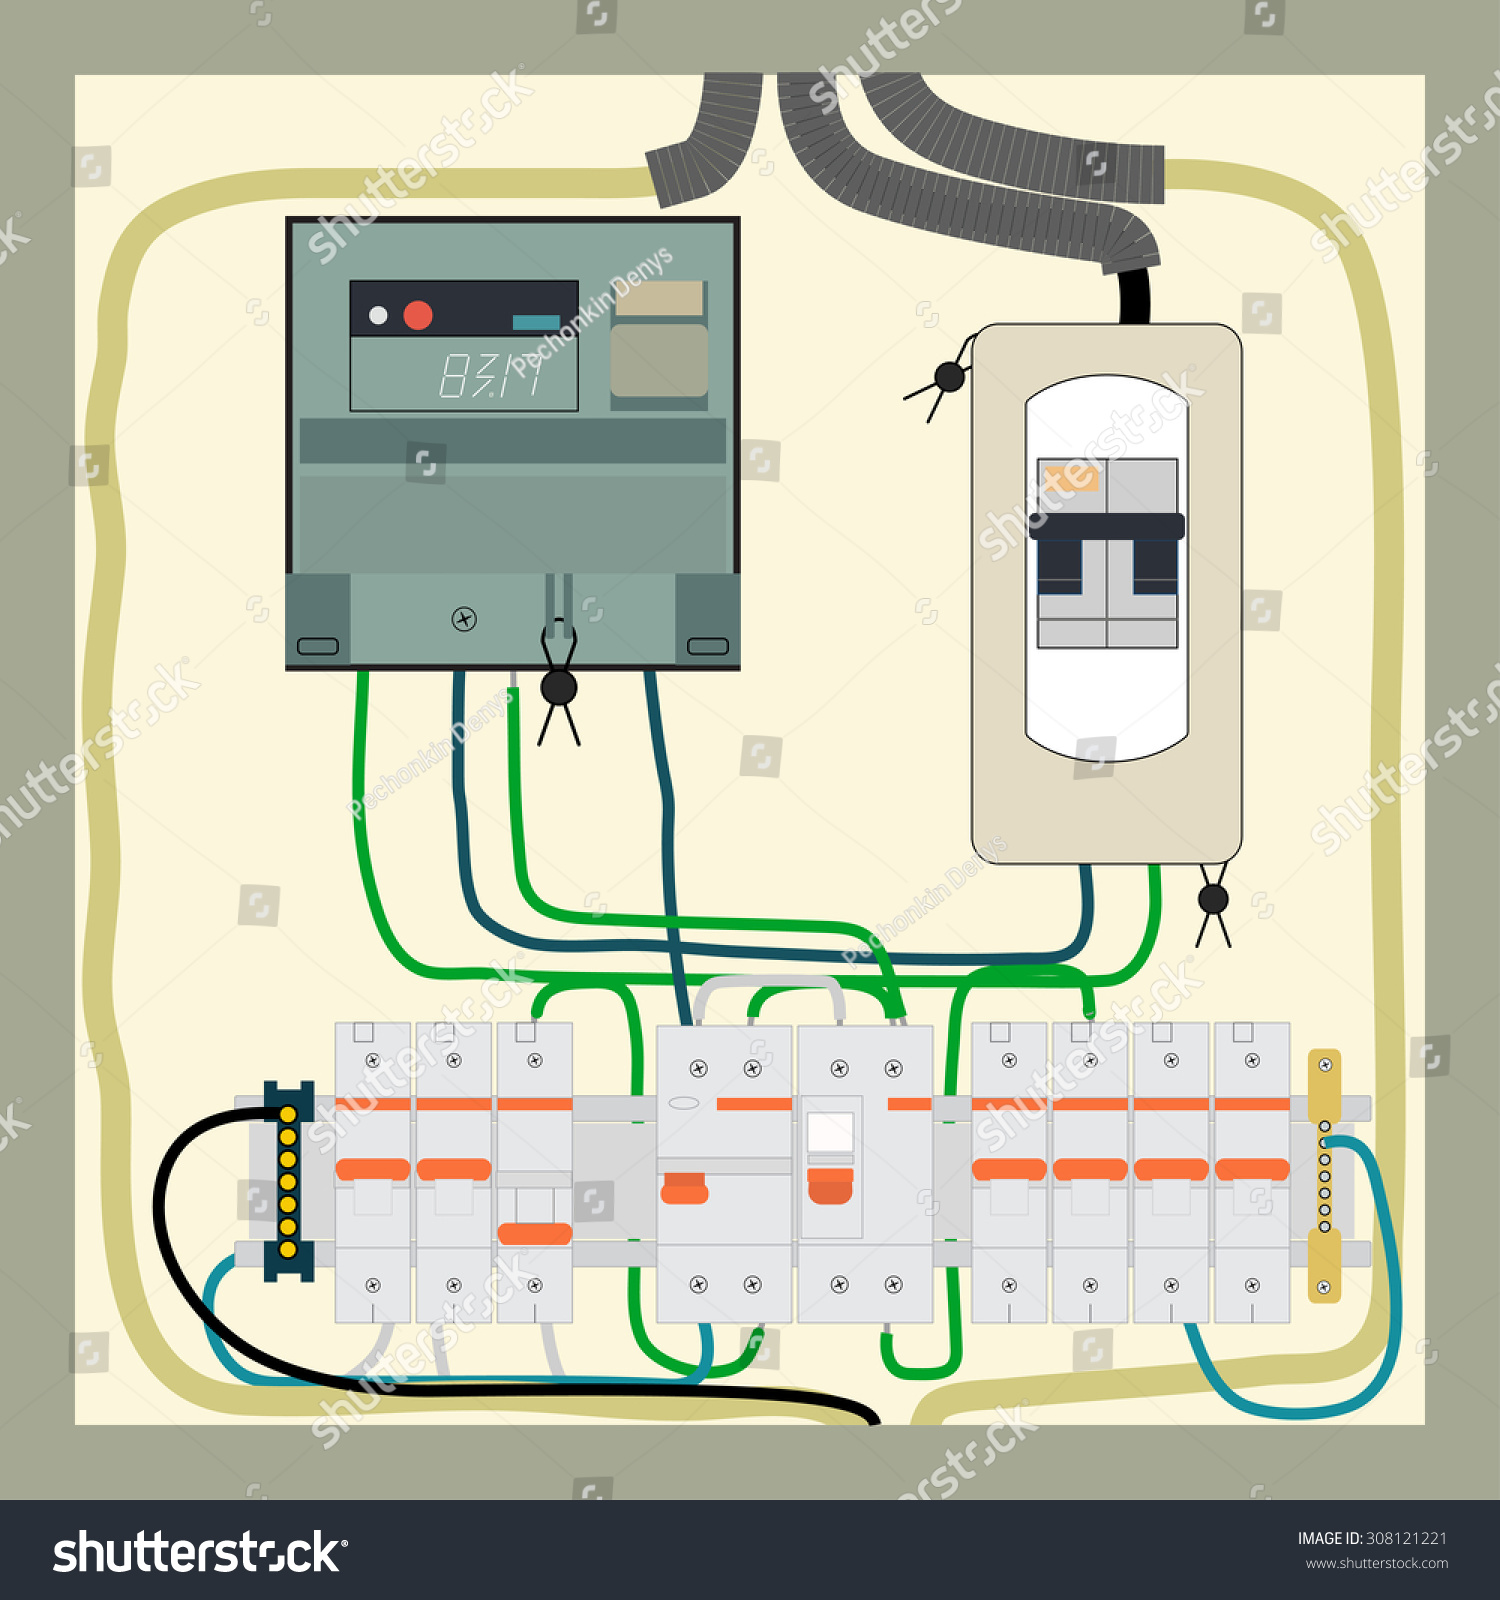 Picture Electrical Panel Electric Meter Circuit Stock Illustration E Diagram Of The And Breakers